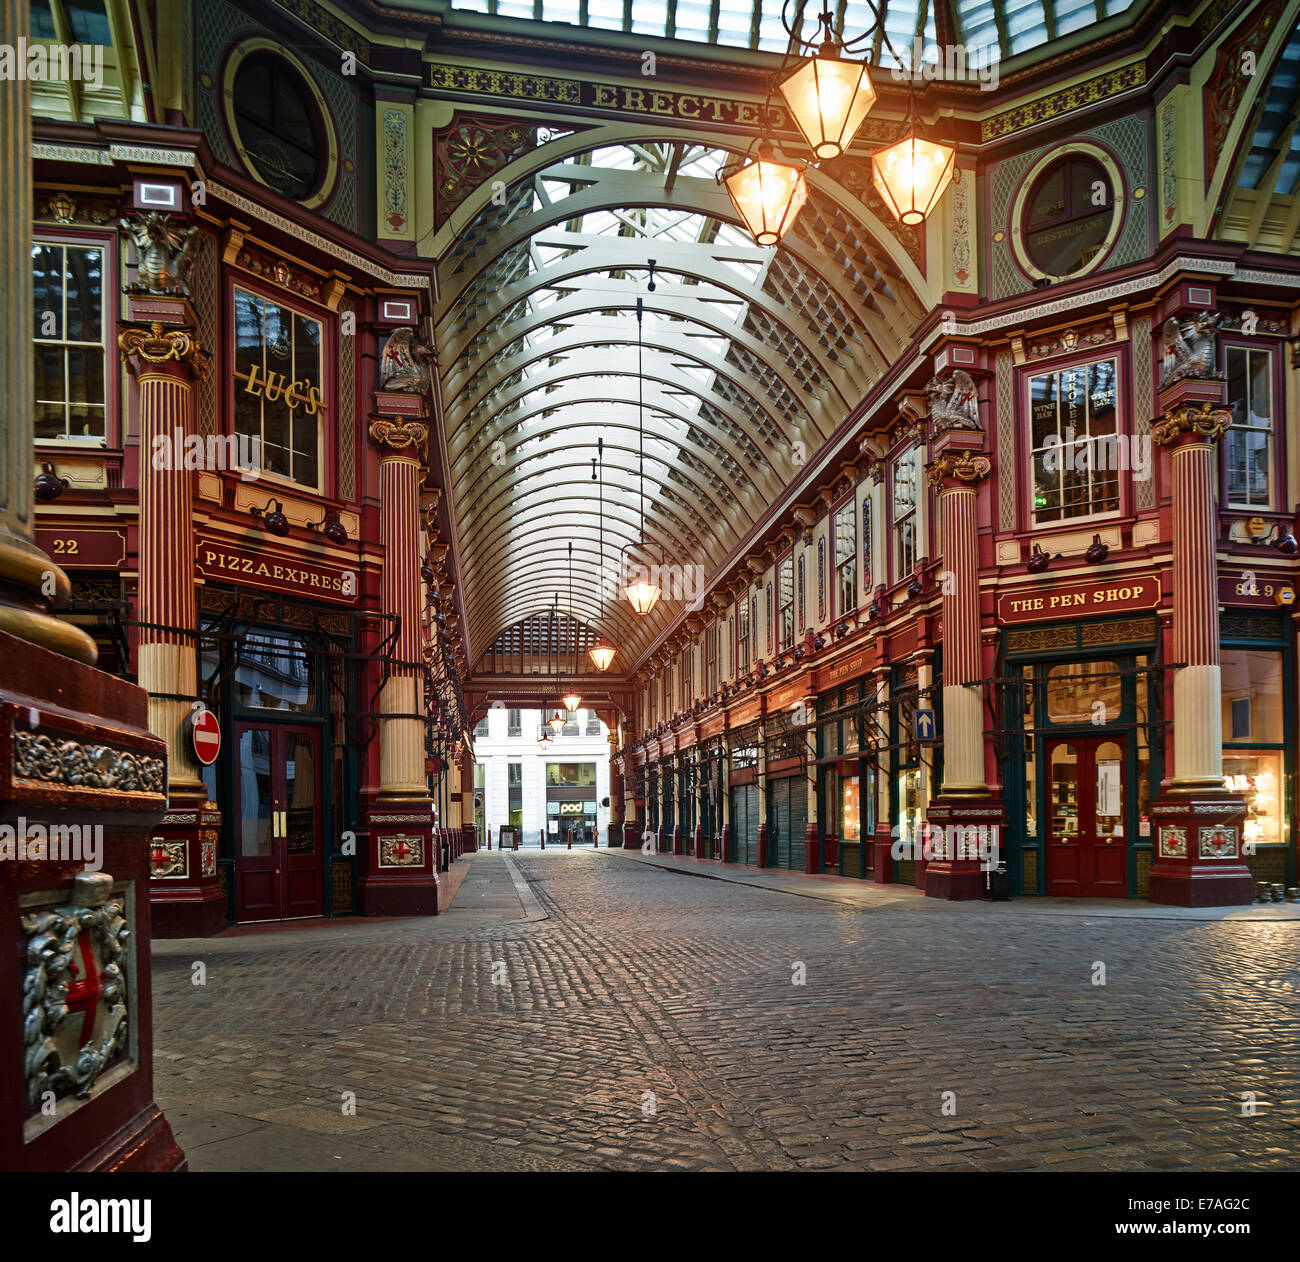 Leadenhall Market, London, England, United Kingdom - Stock Image